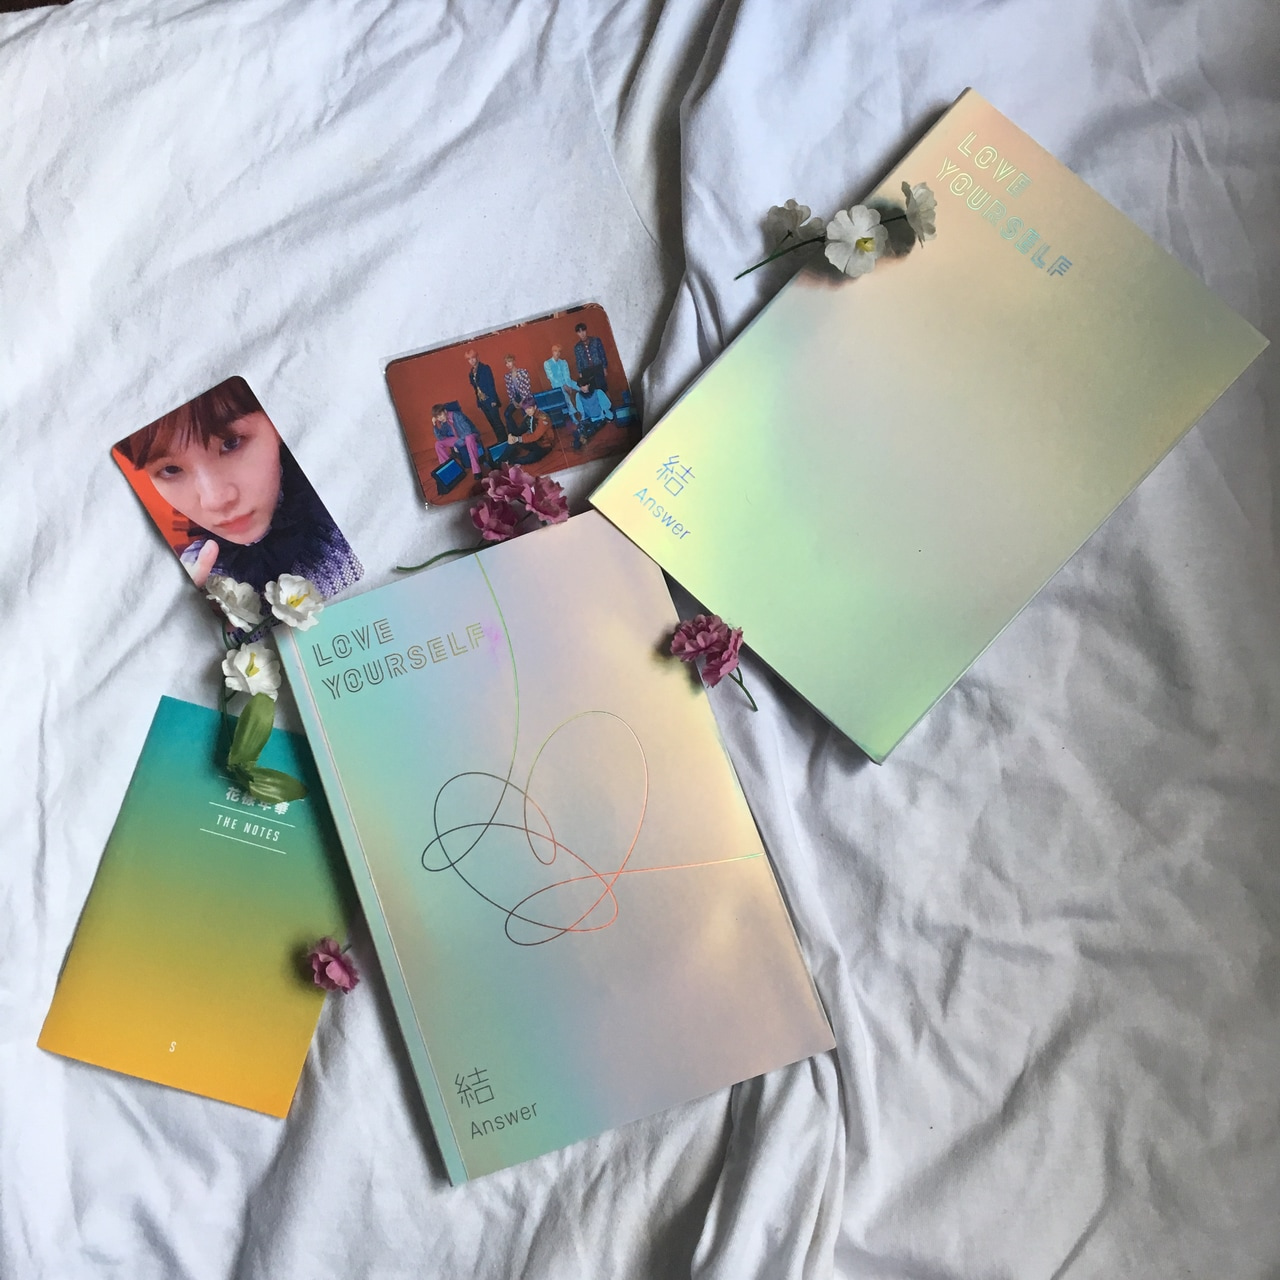 love yourself answer, love yourself, bts album and answer